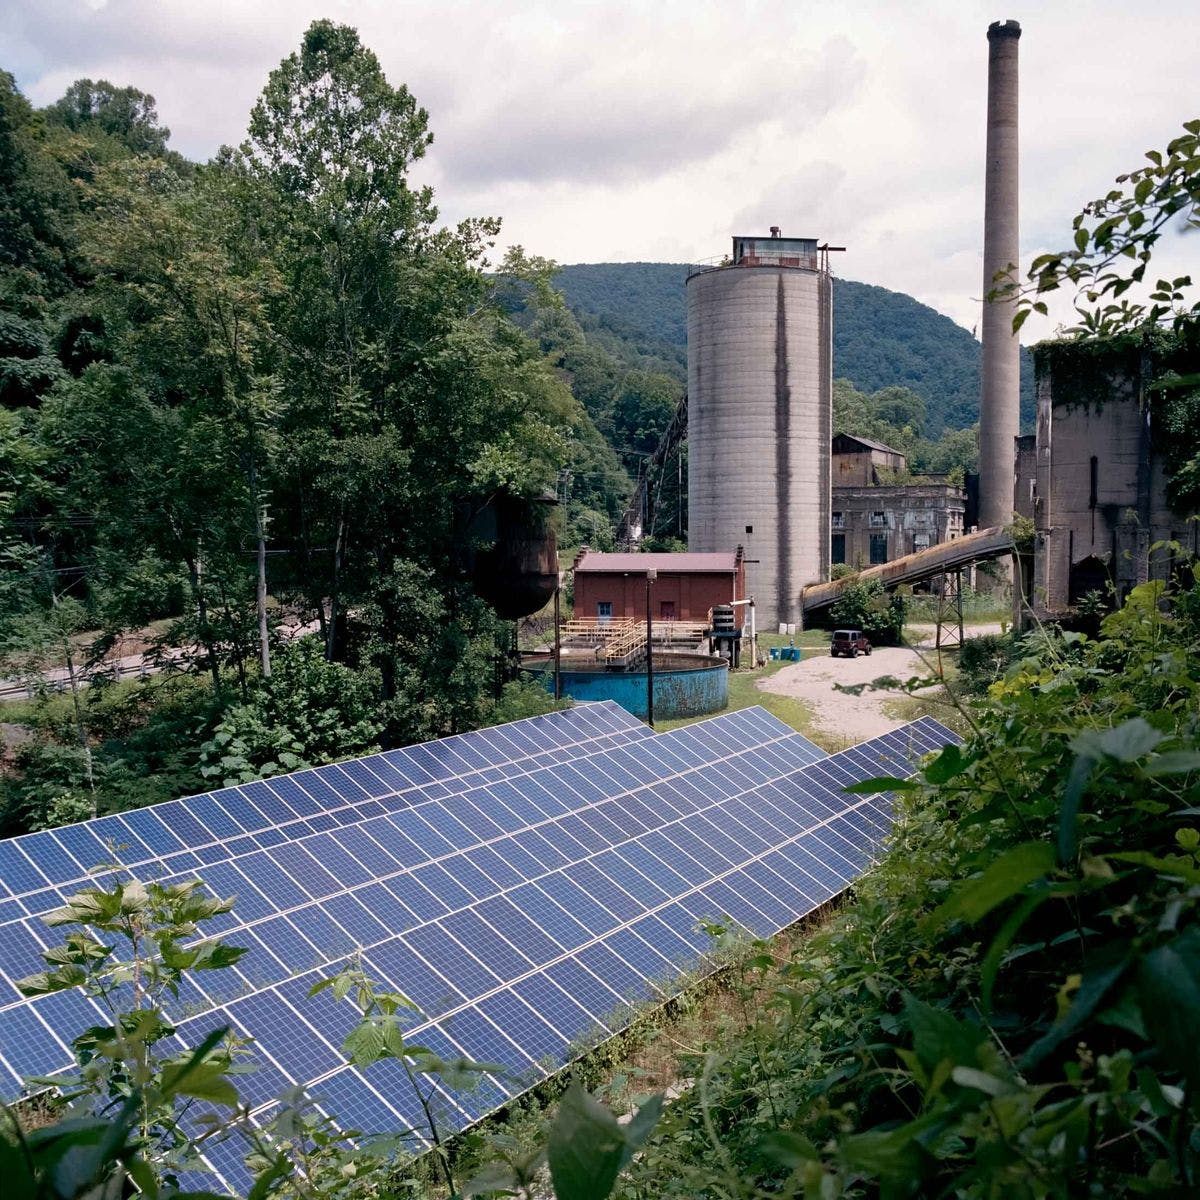 Solar panels at the closed coal plant across from the Portal No. 31 Underground Coal Mine exhibit in Lynch, Kentucky.